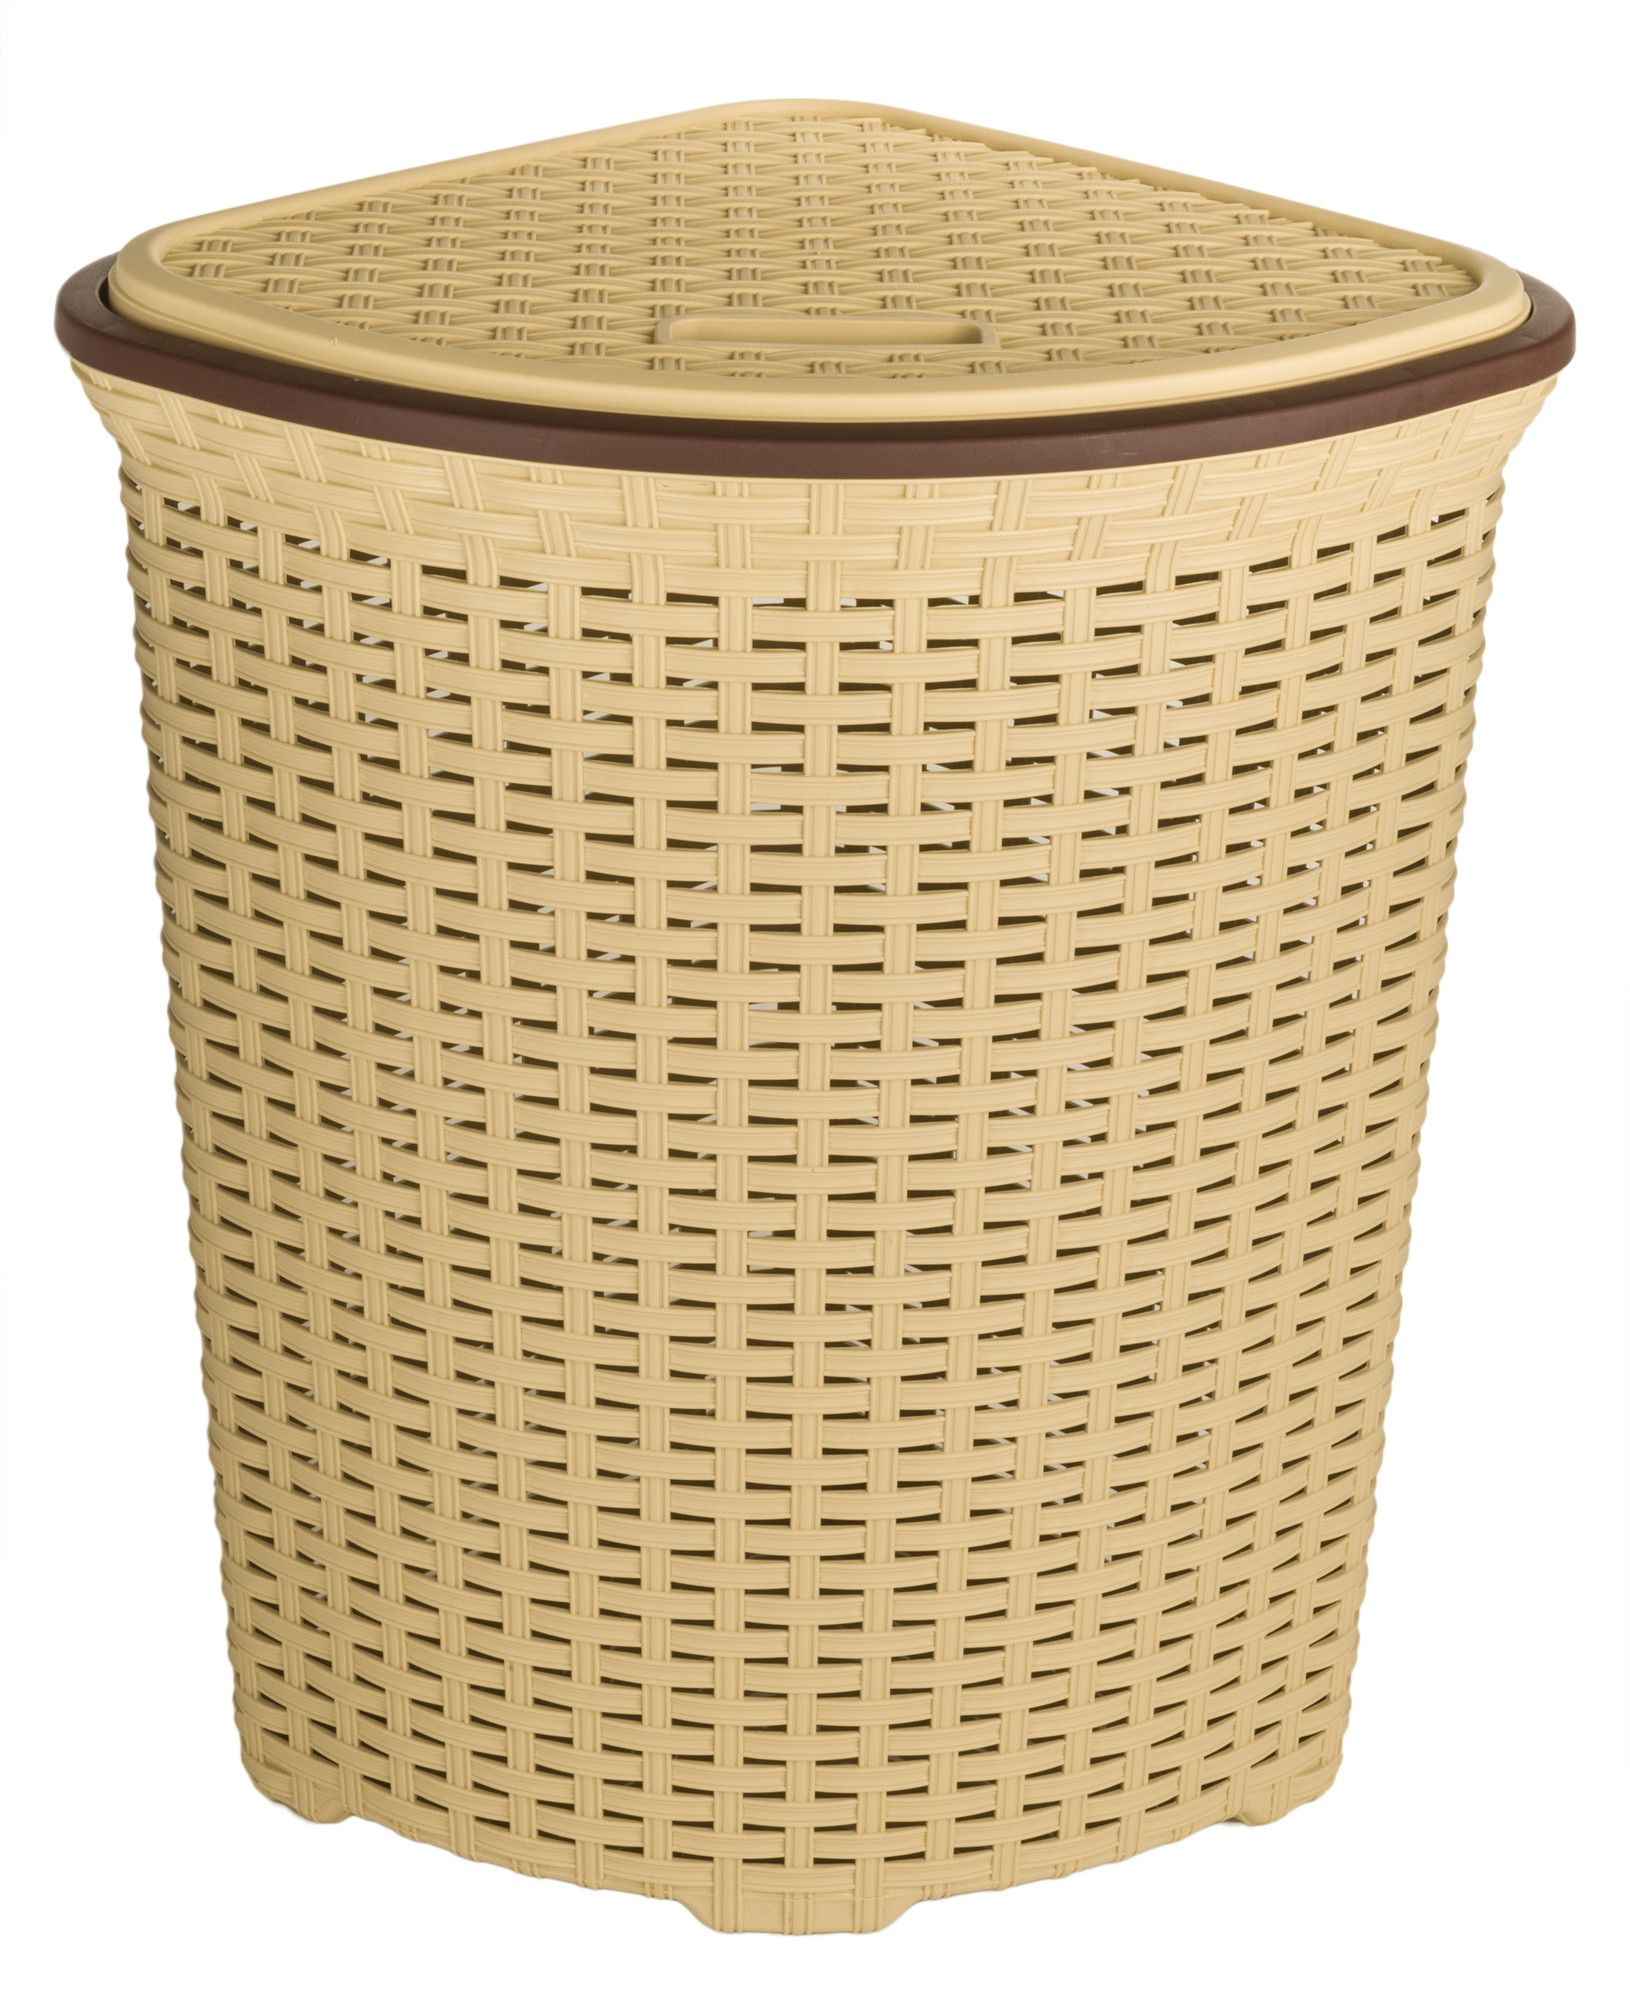 Simpson Corner Laundry Hamper With Images Wicker Laundry